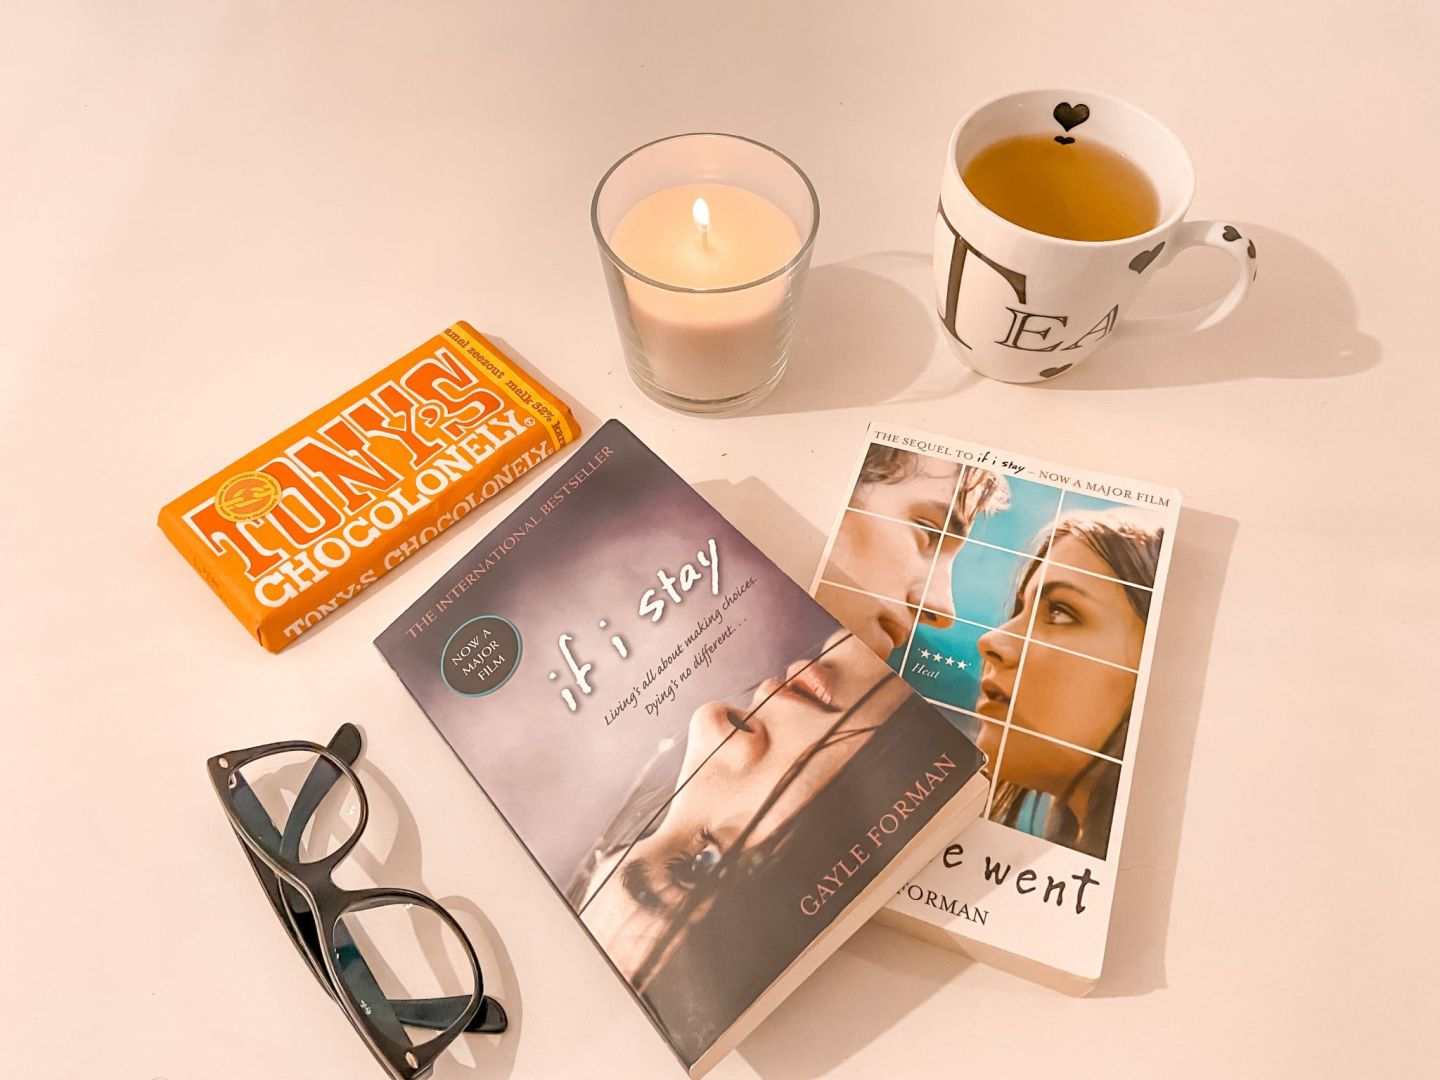 If I stay - books flatlay